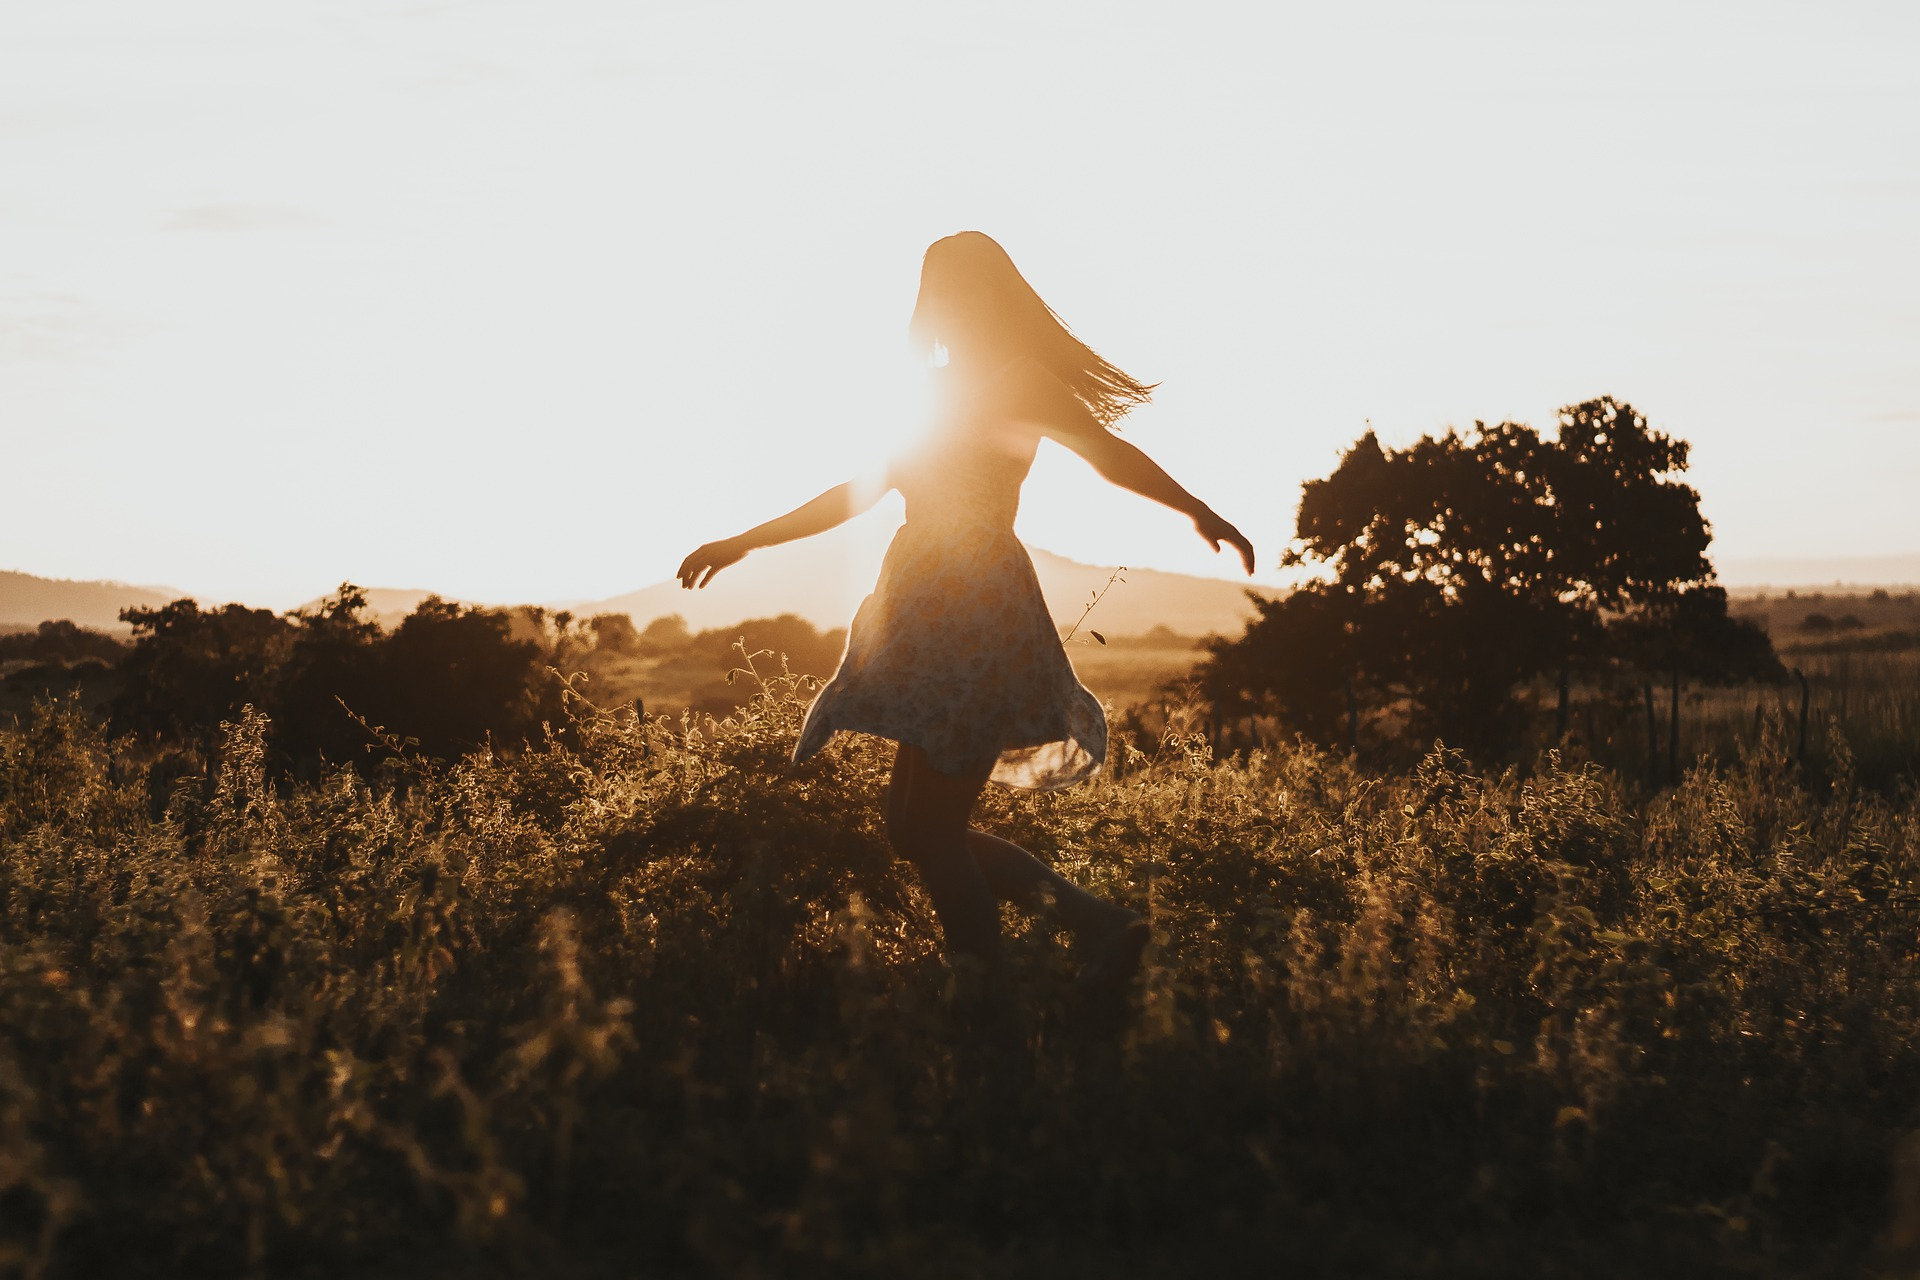 ideas for self care depicted by carefree girl in field